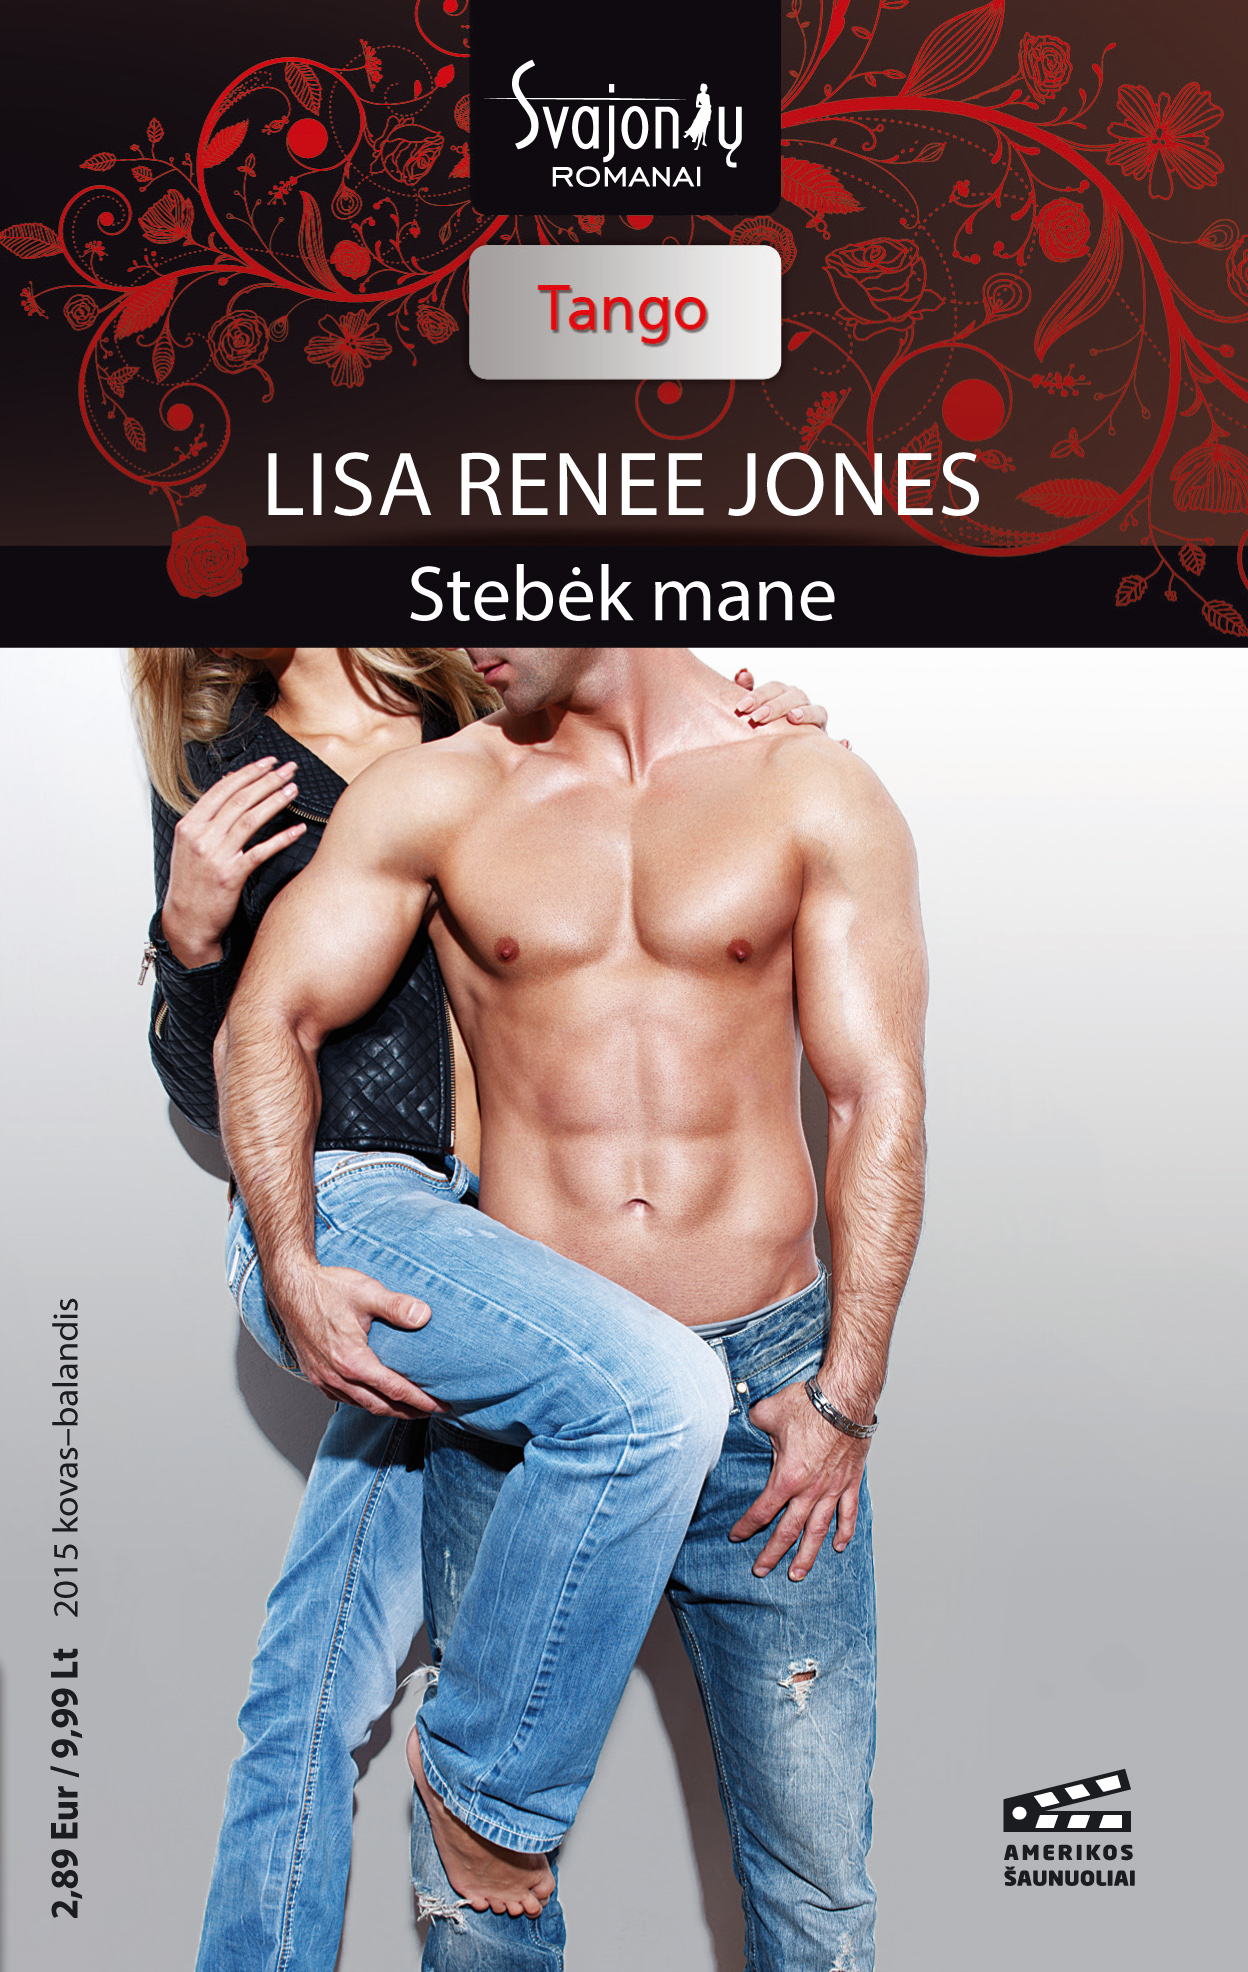 Lisa Renee Jones Stebėk mane lisa renee jones liesk mane